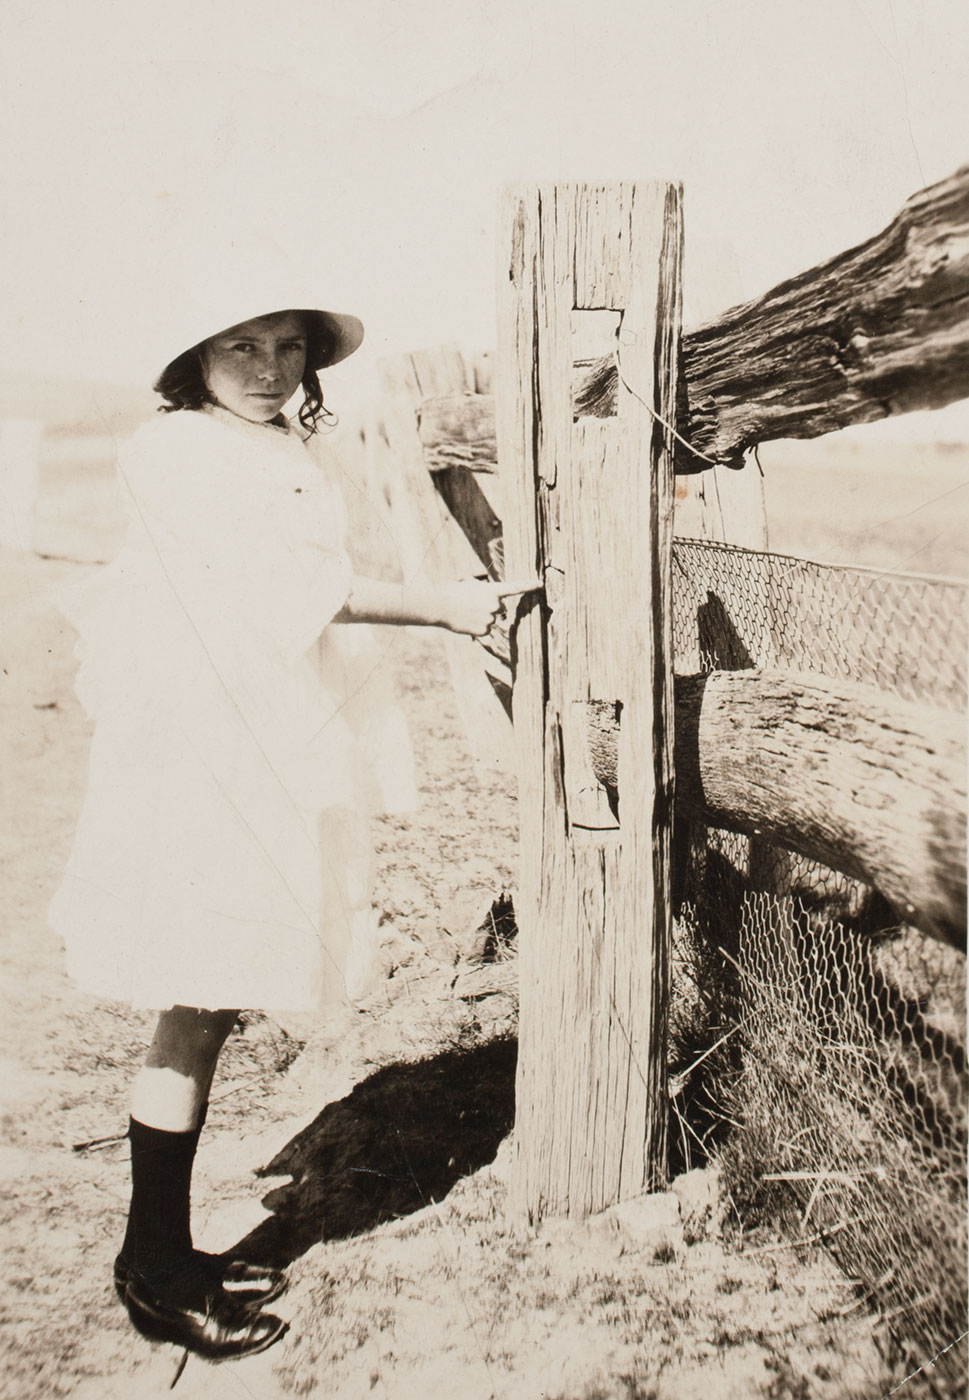 Black and white photo of a young girl standing adjacent to and pointing at an old wooden fence. - click to view larger image